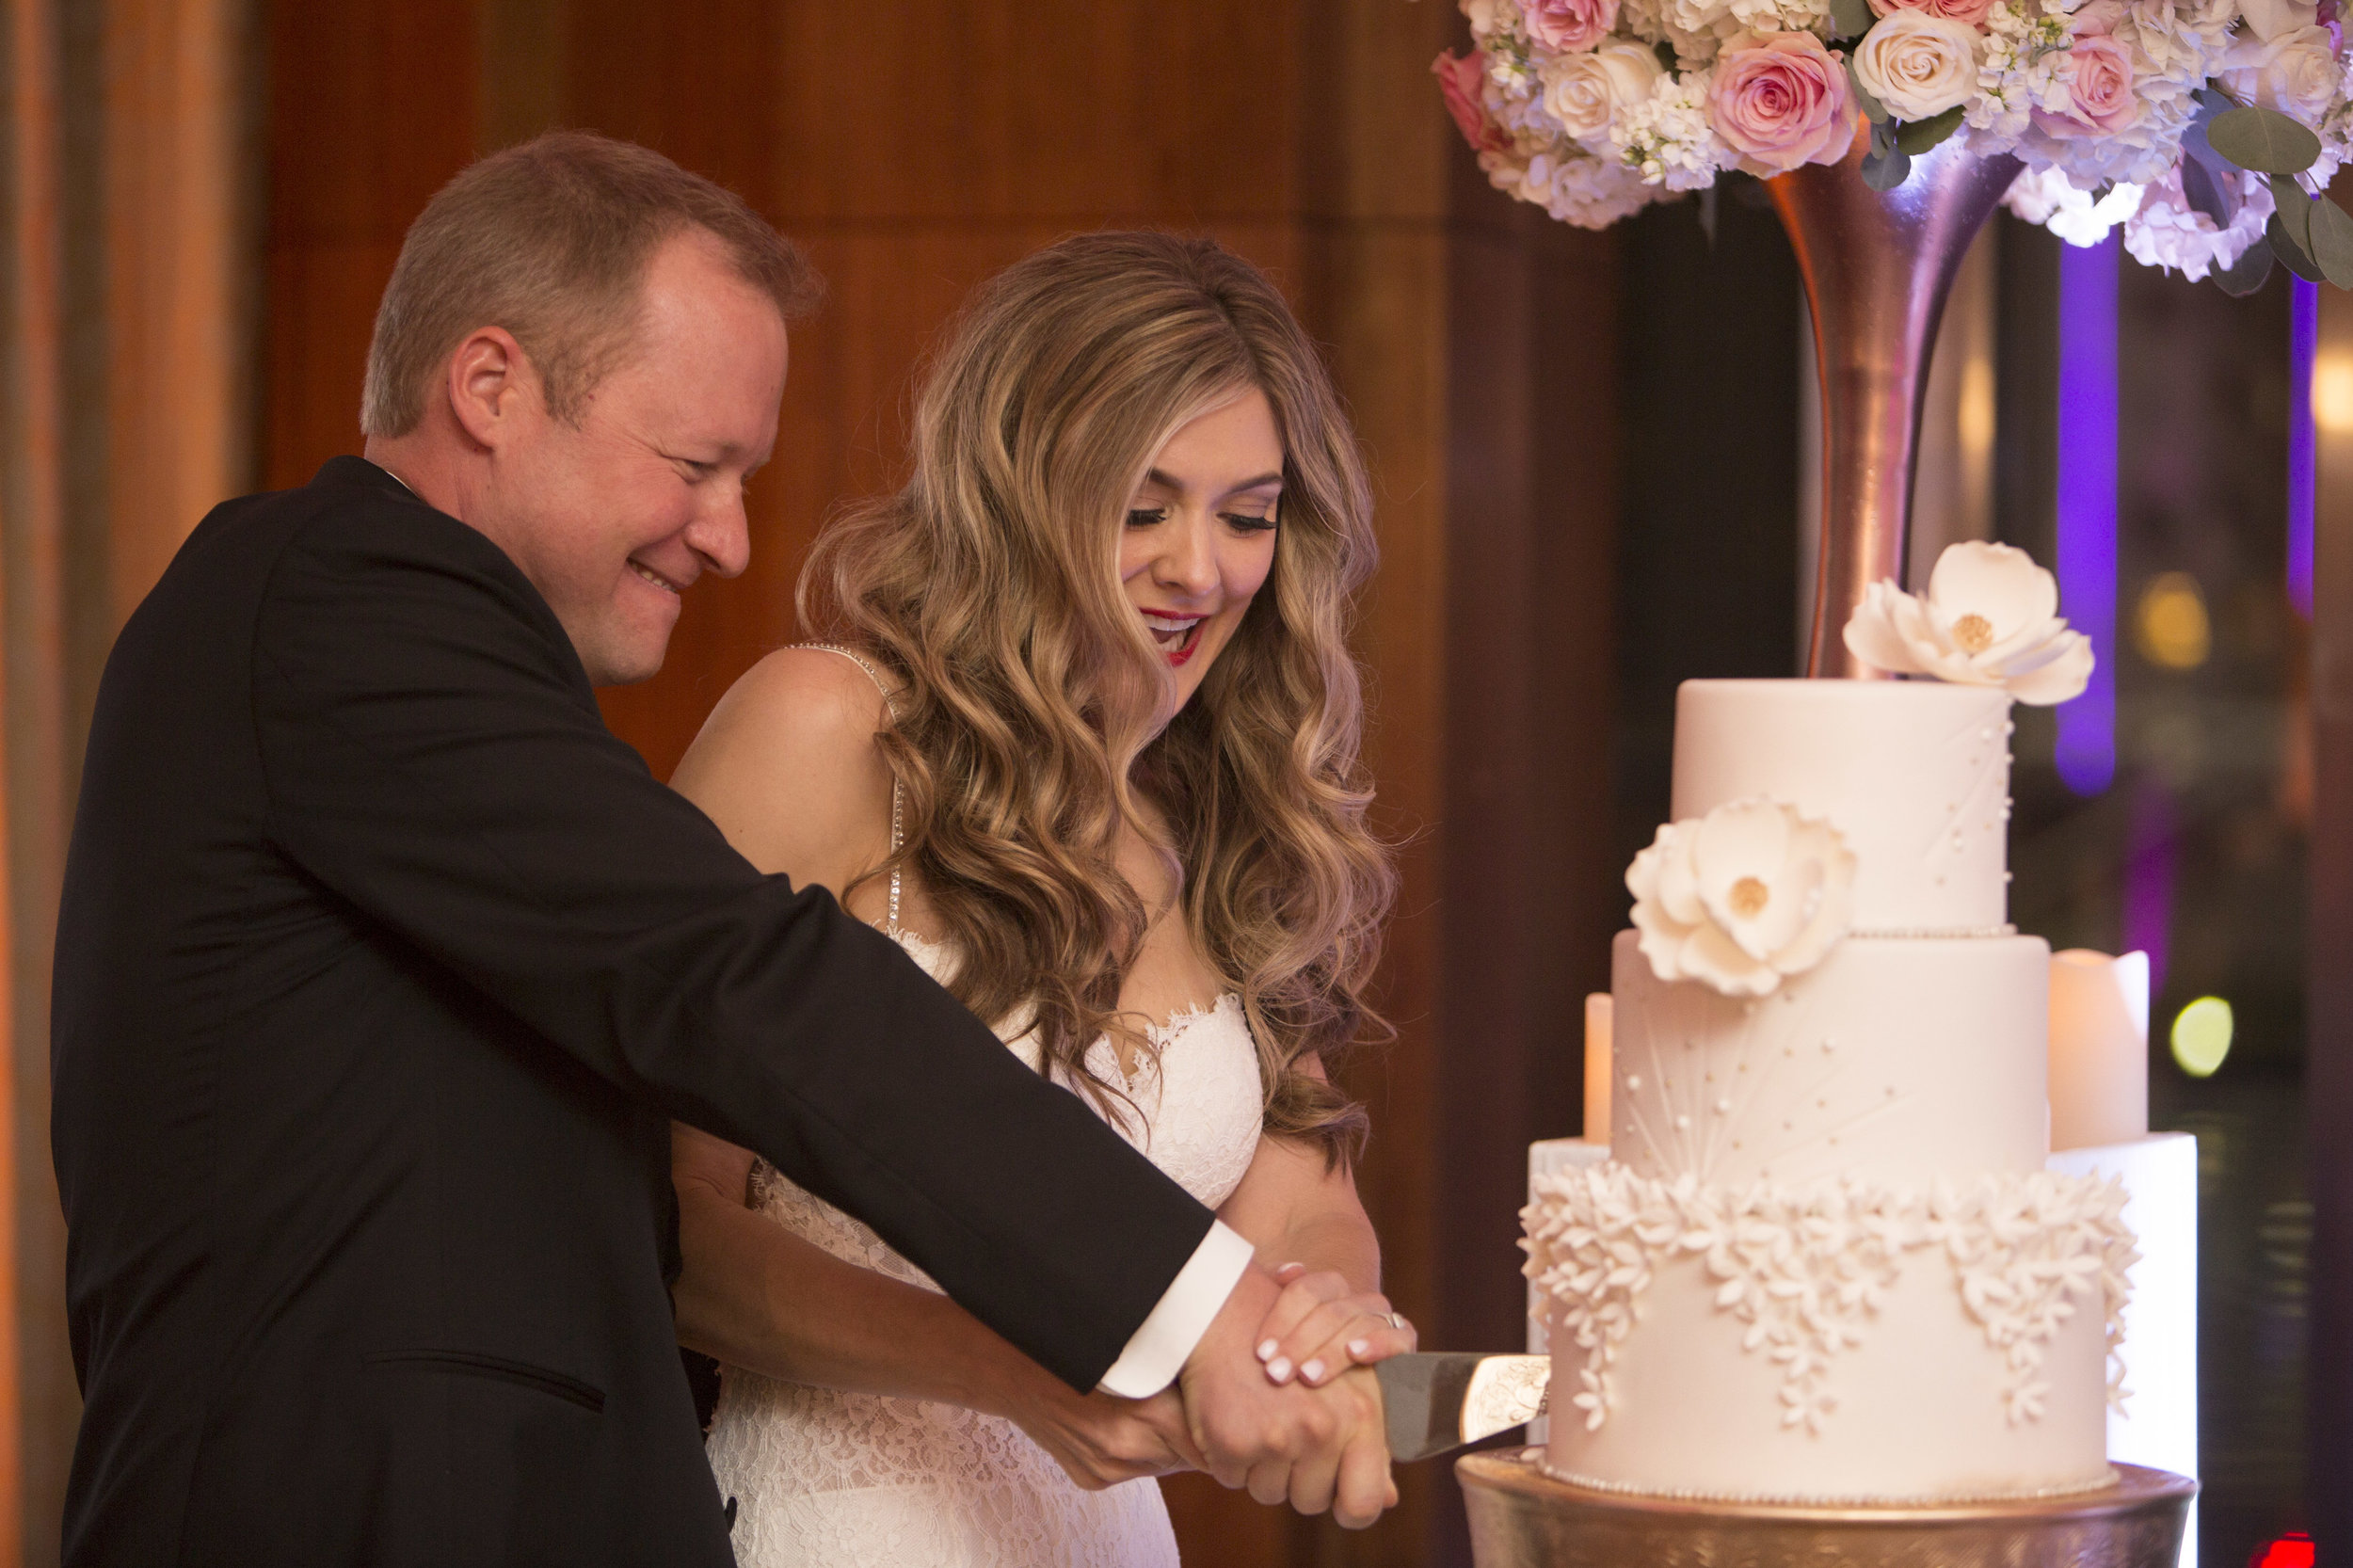 Cutting the cake. Las V  egas   Wedding Planner Andrea Eppolito  .   Image by AltF.